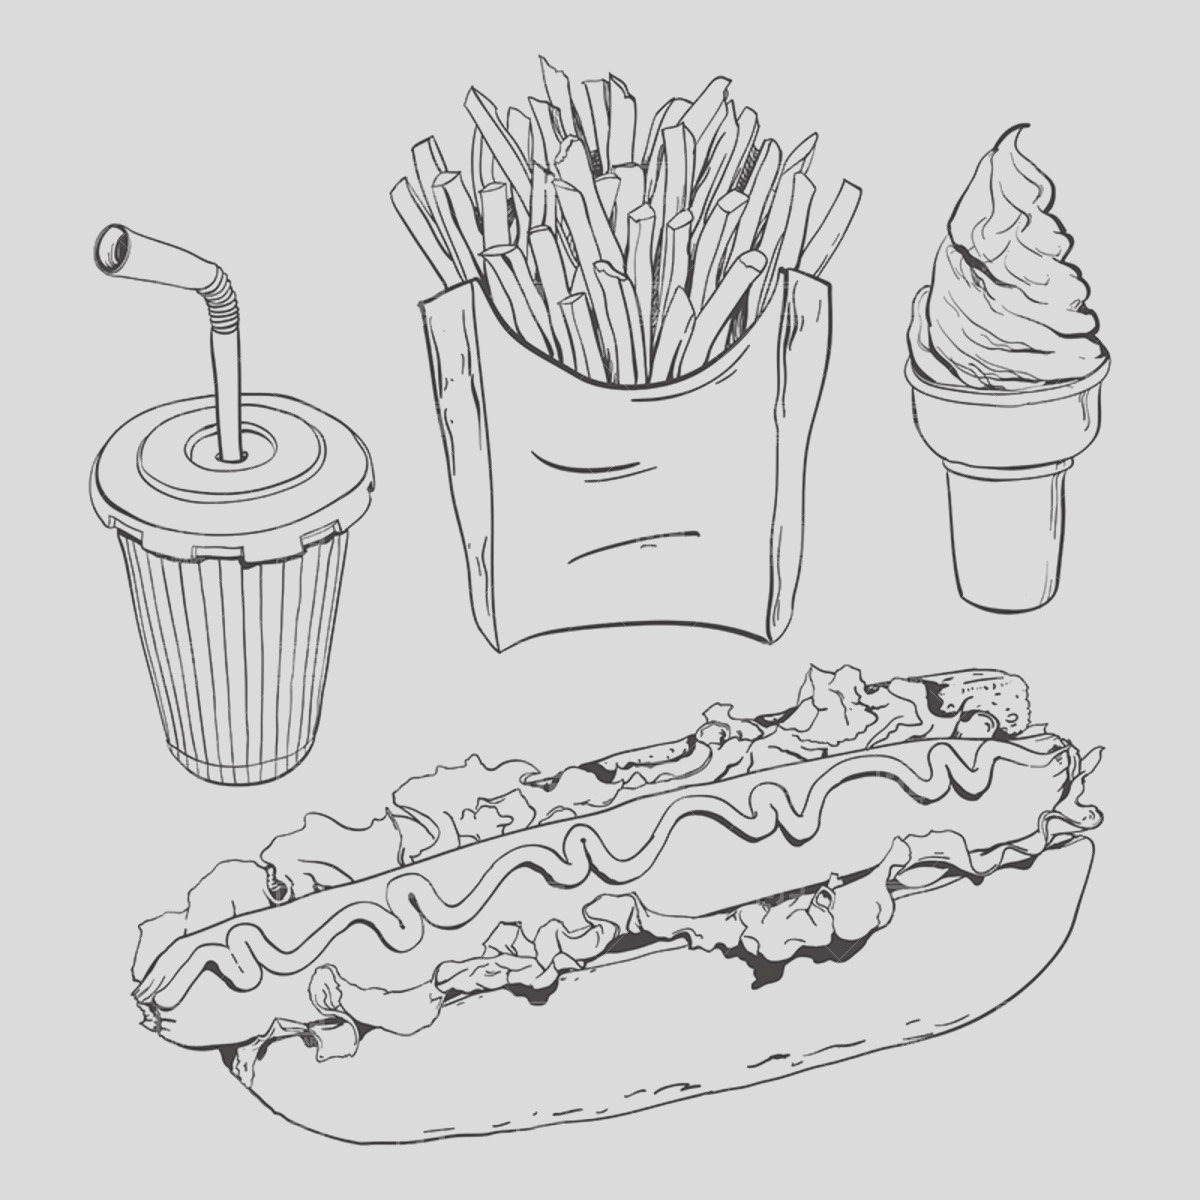 fast food set isolated on white 1857 vector clipart